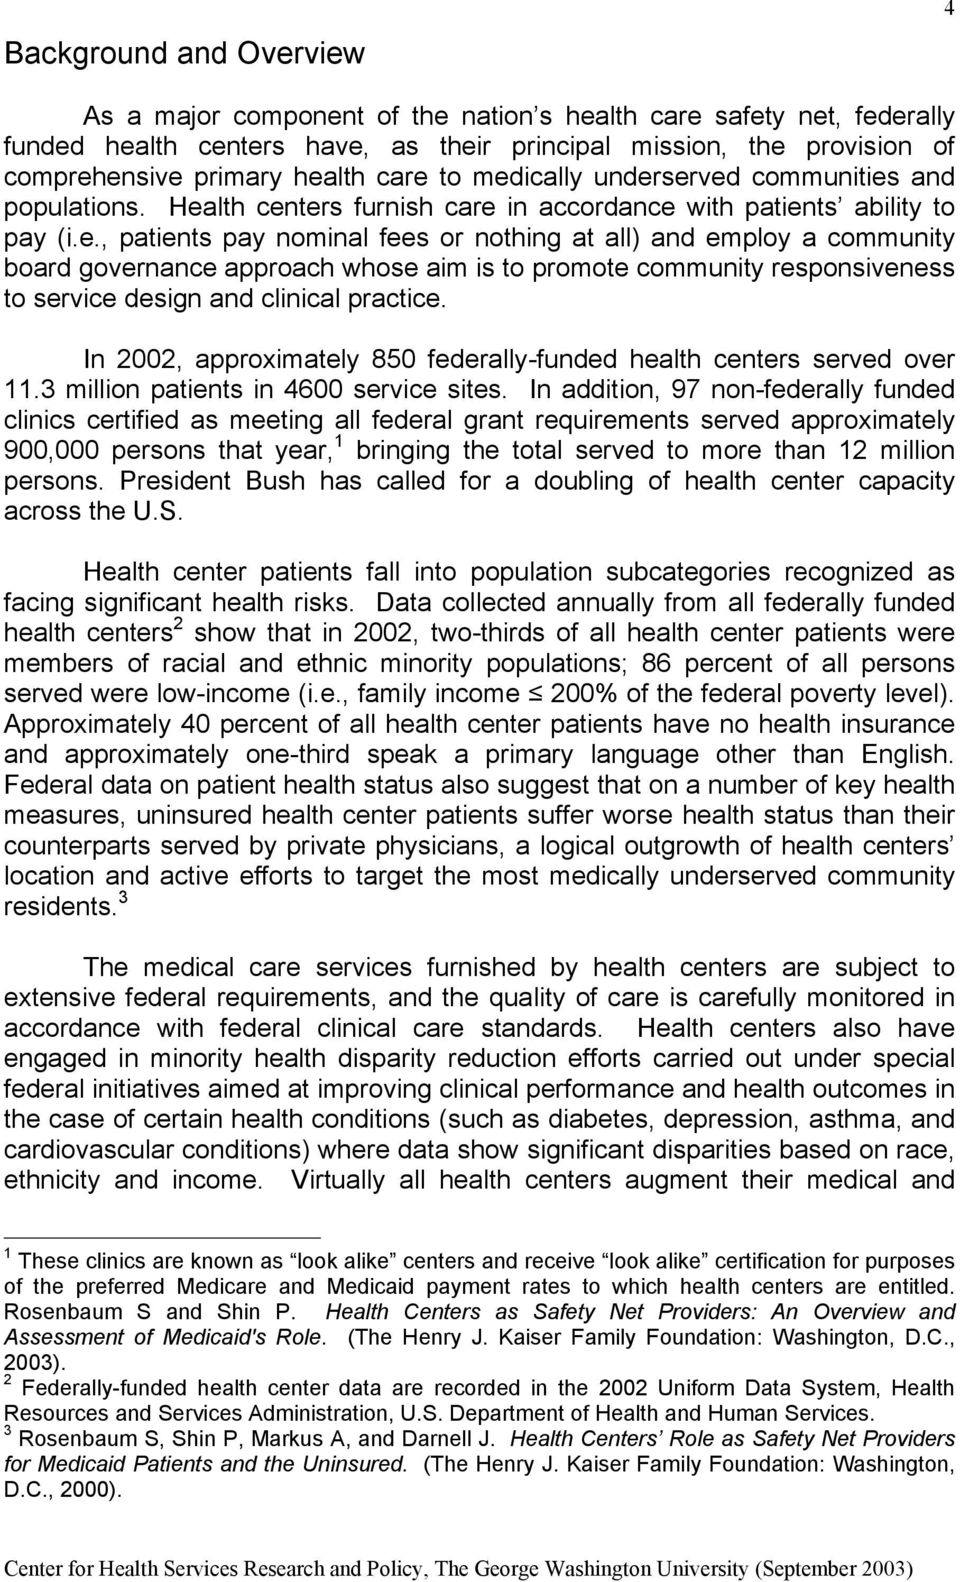 In 2002, approximately 850 federally-funded health centers served over 11.3 million patients in 4600 service sites.